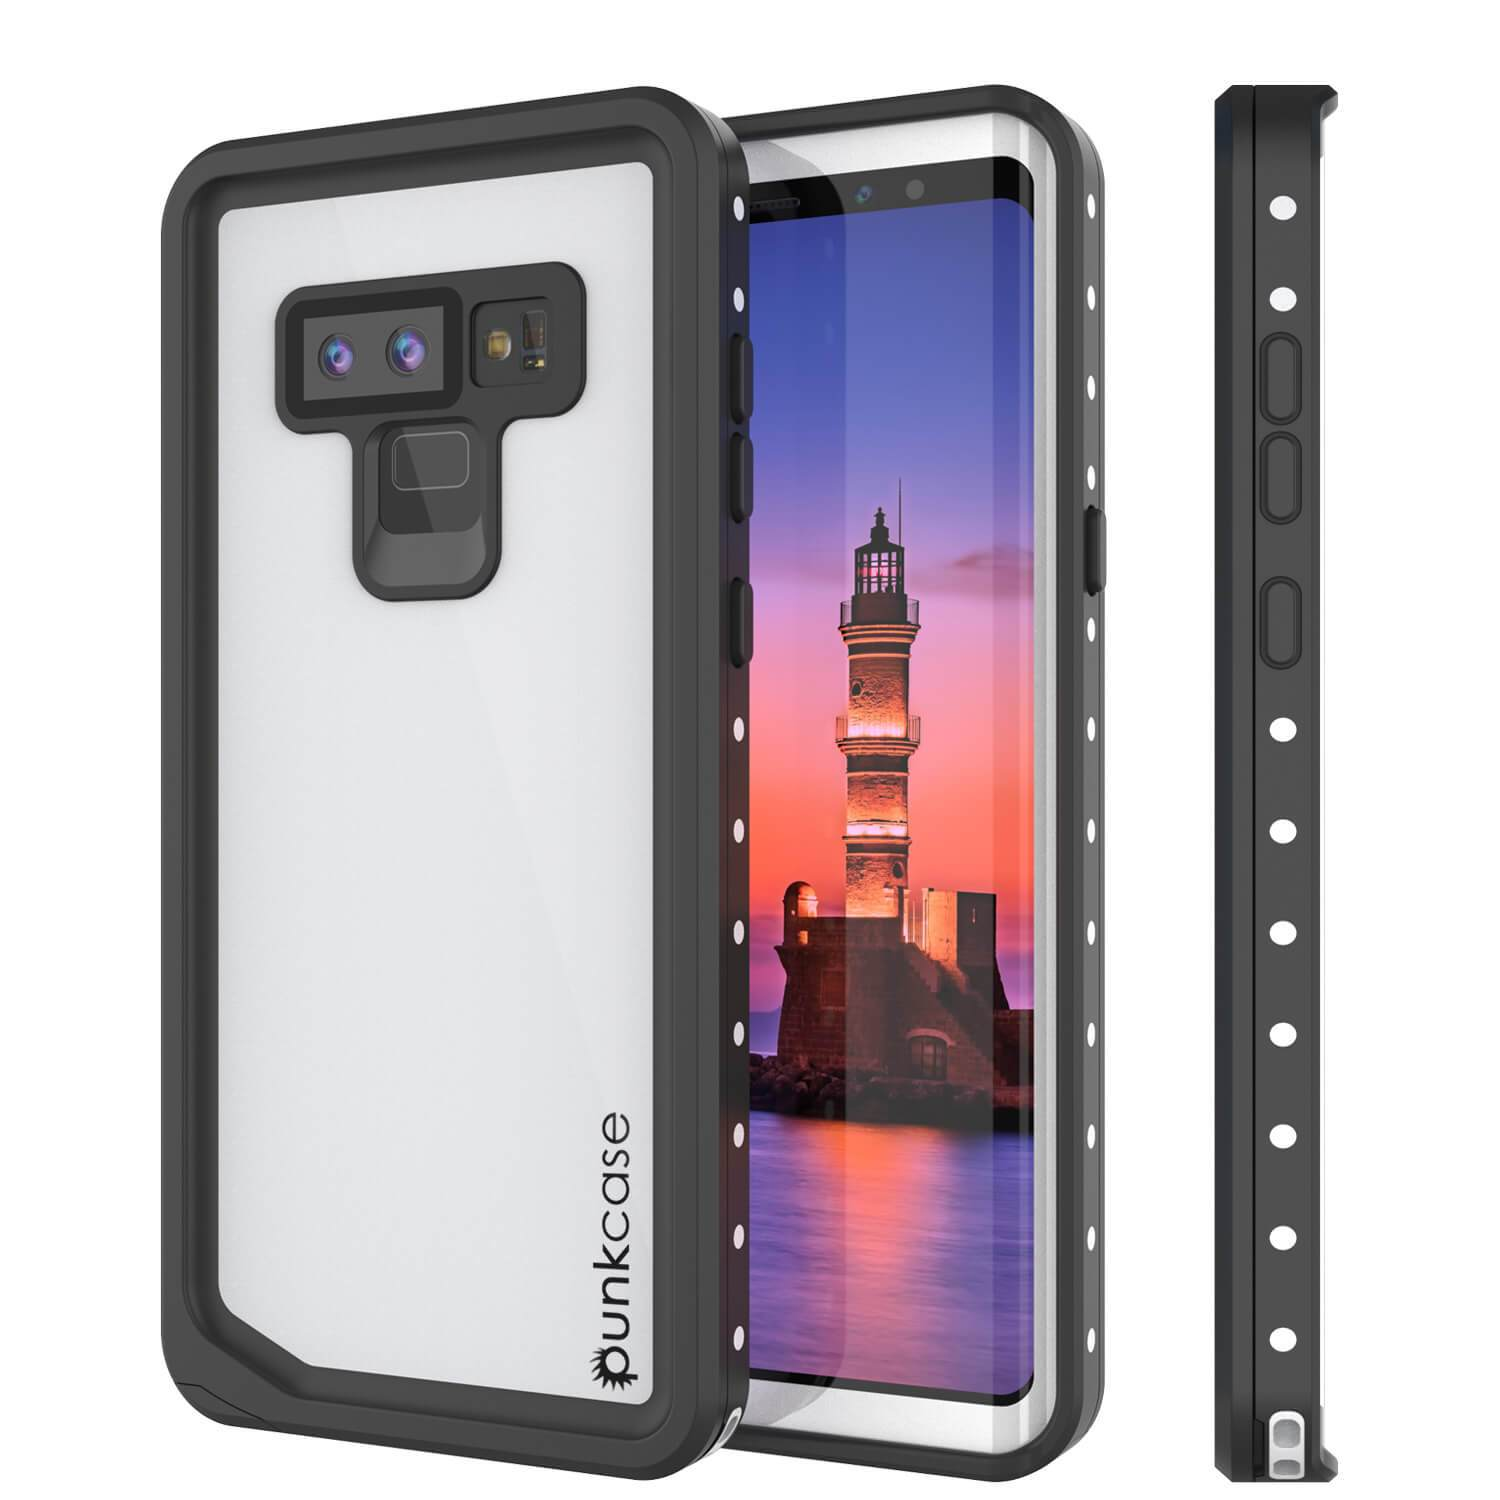 Galaxy Note 9 Waterproof Case, PunkСase StudStar White Thin 6.6ft Underwater Shock/Snow Proof